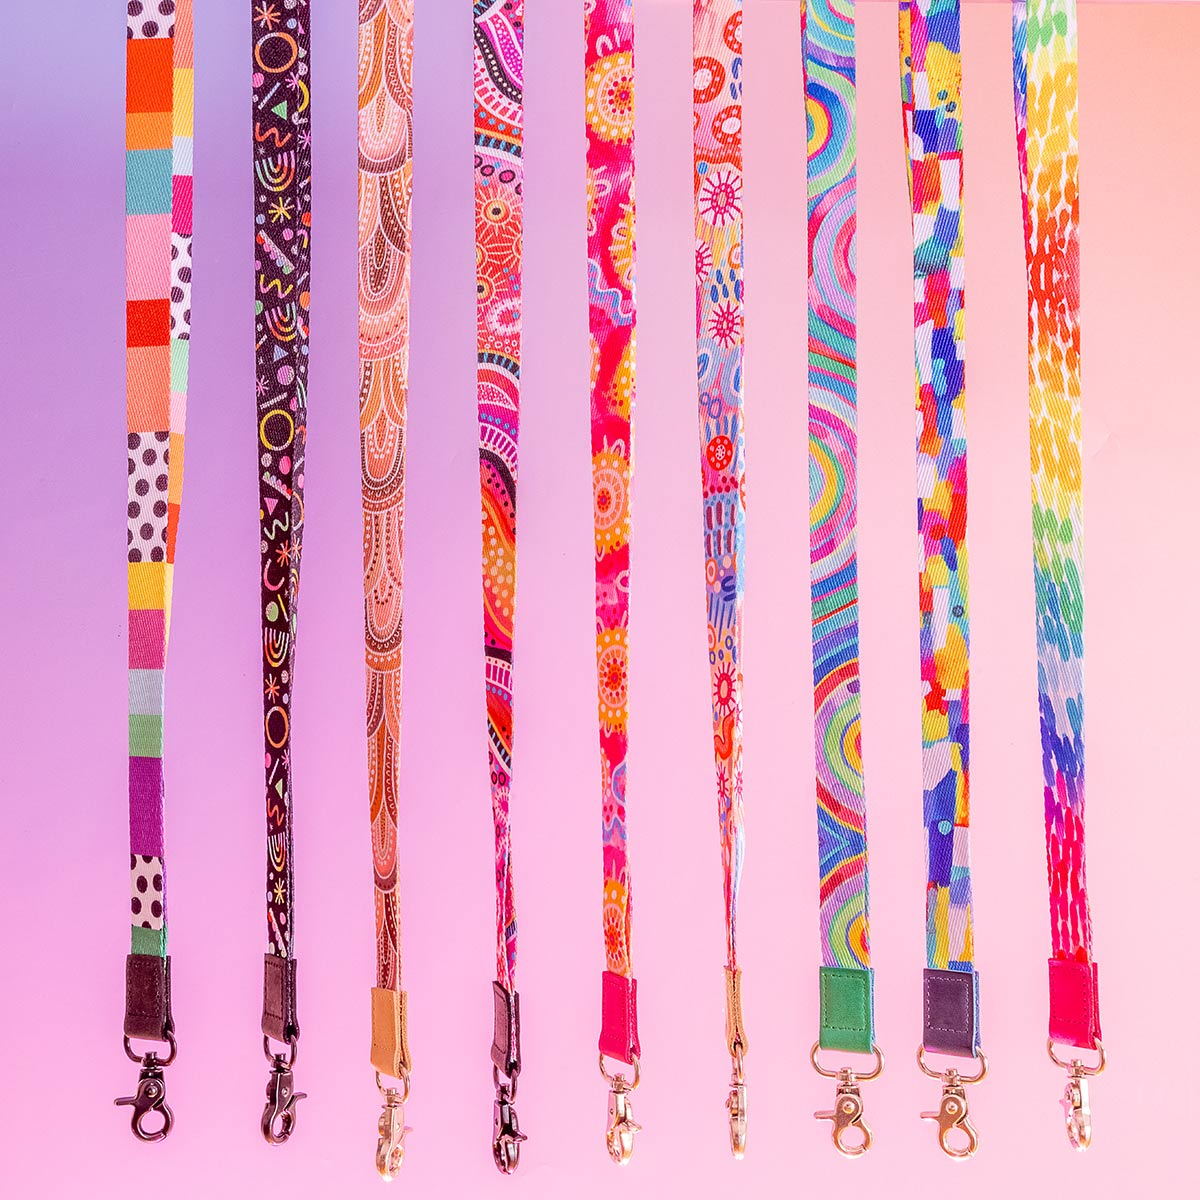 Colourful lanyards all in a line against a purple gradient background